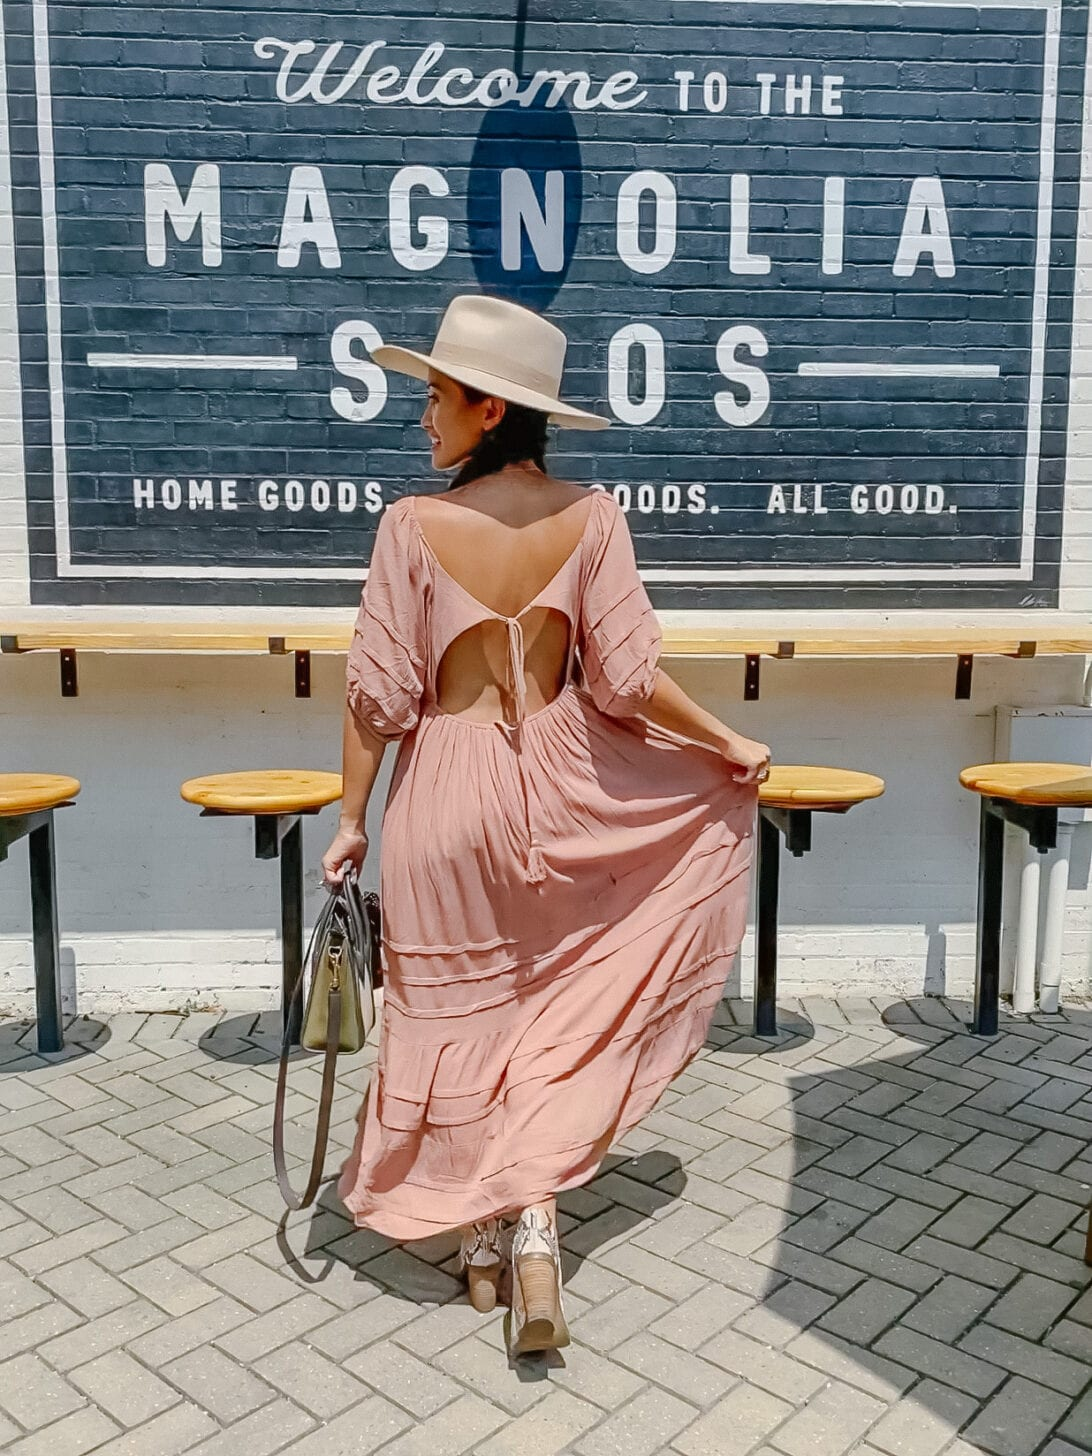 BLUSH DRESS, PINK MAXI DRESS, Joanna Gaines, MAGNOLIA SILOS